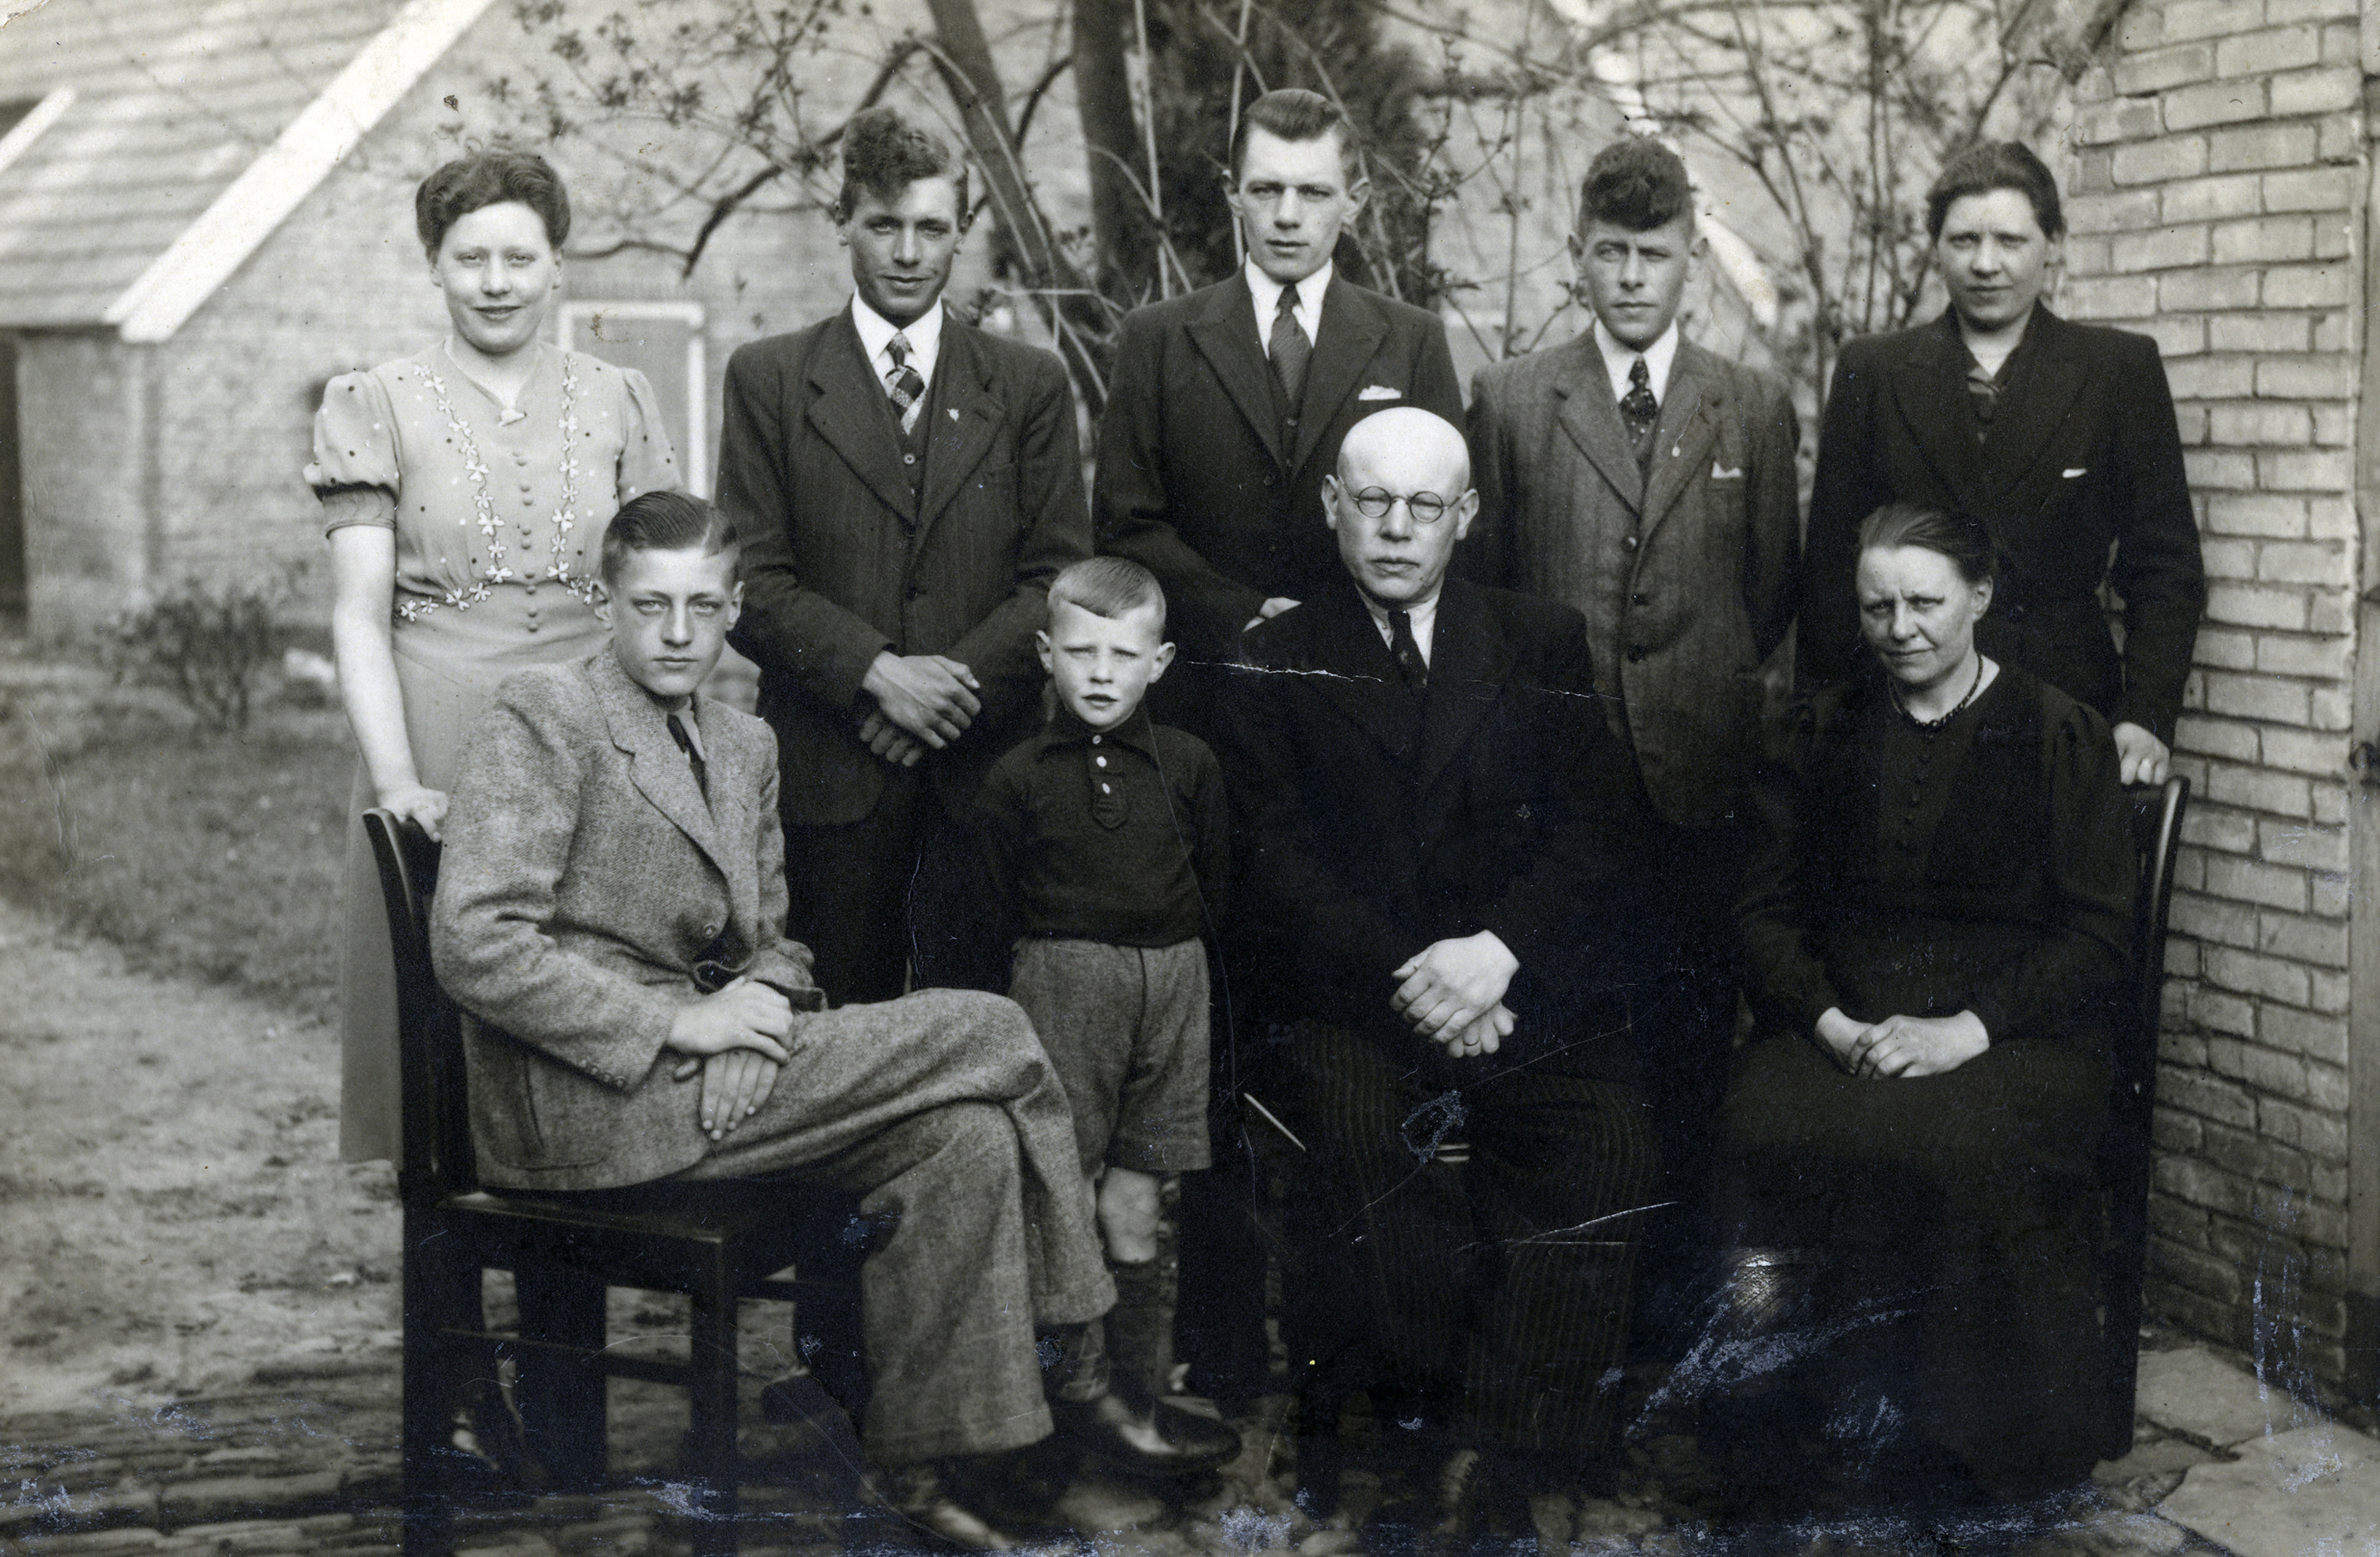 Postwar portrait of a Dutch rescuer family.  Among those pictured are parents Tai and Aaltjie Katerberg (seated, right) and their daughters Tina (standing, far left) and Jante (standing, far right).